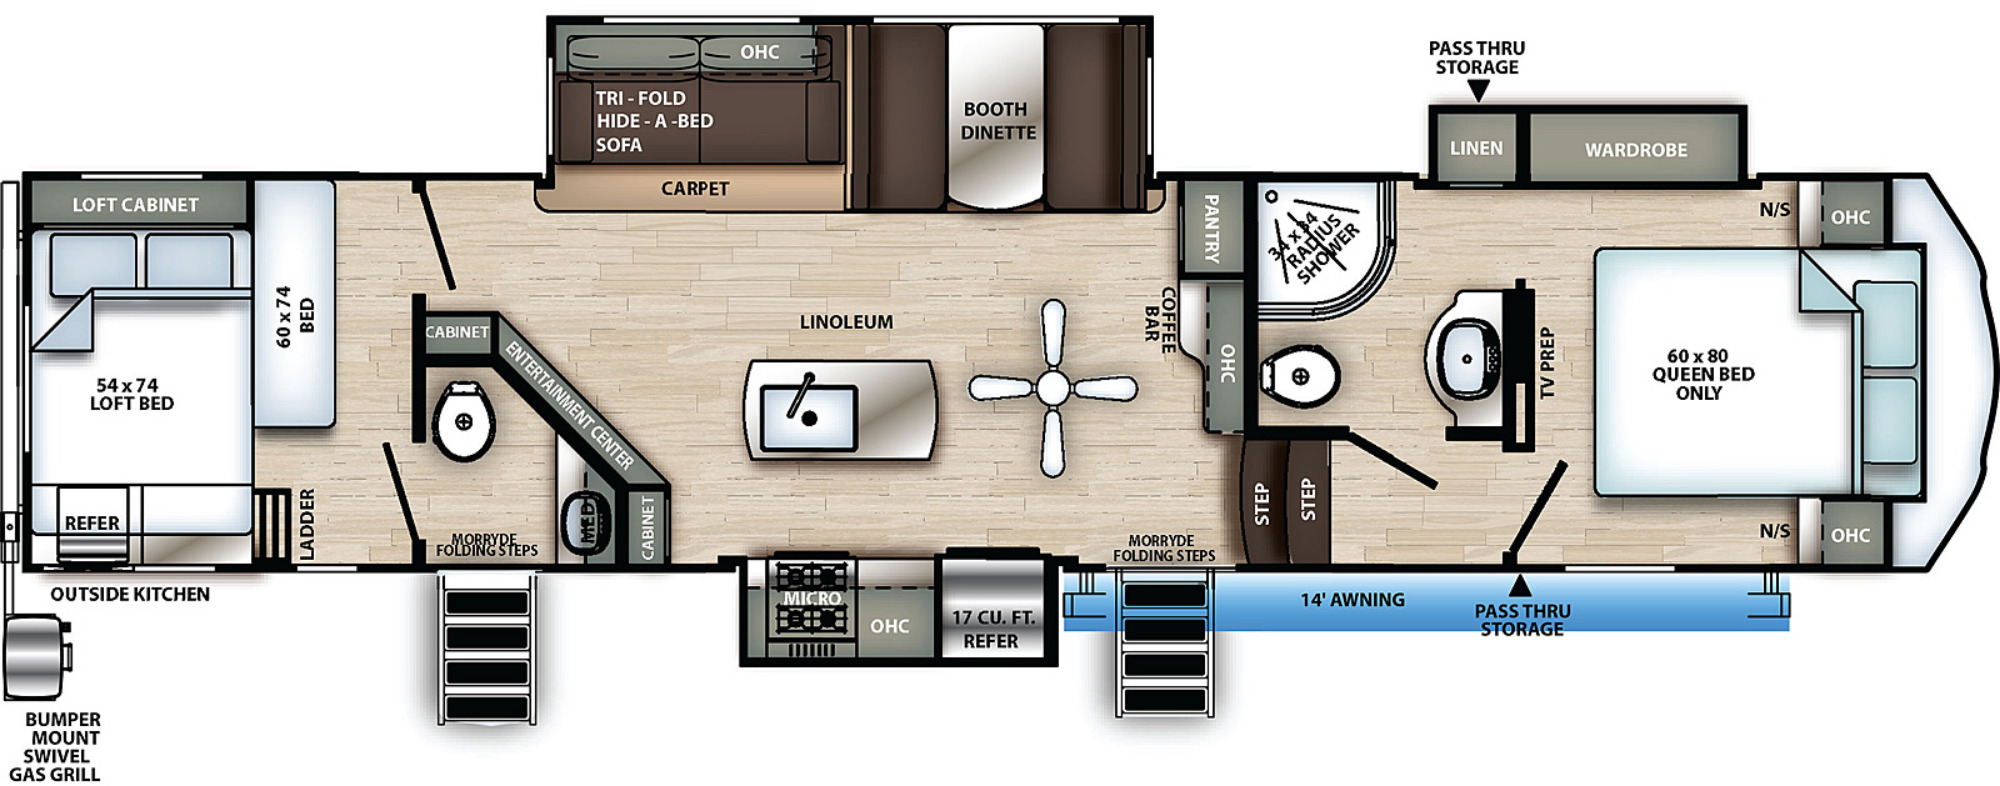 View Floor Plan for 2021 FOREST RIVER SIERRA C-CLASS 3440BH